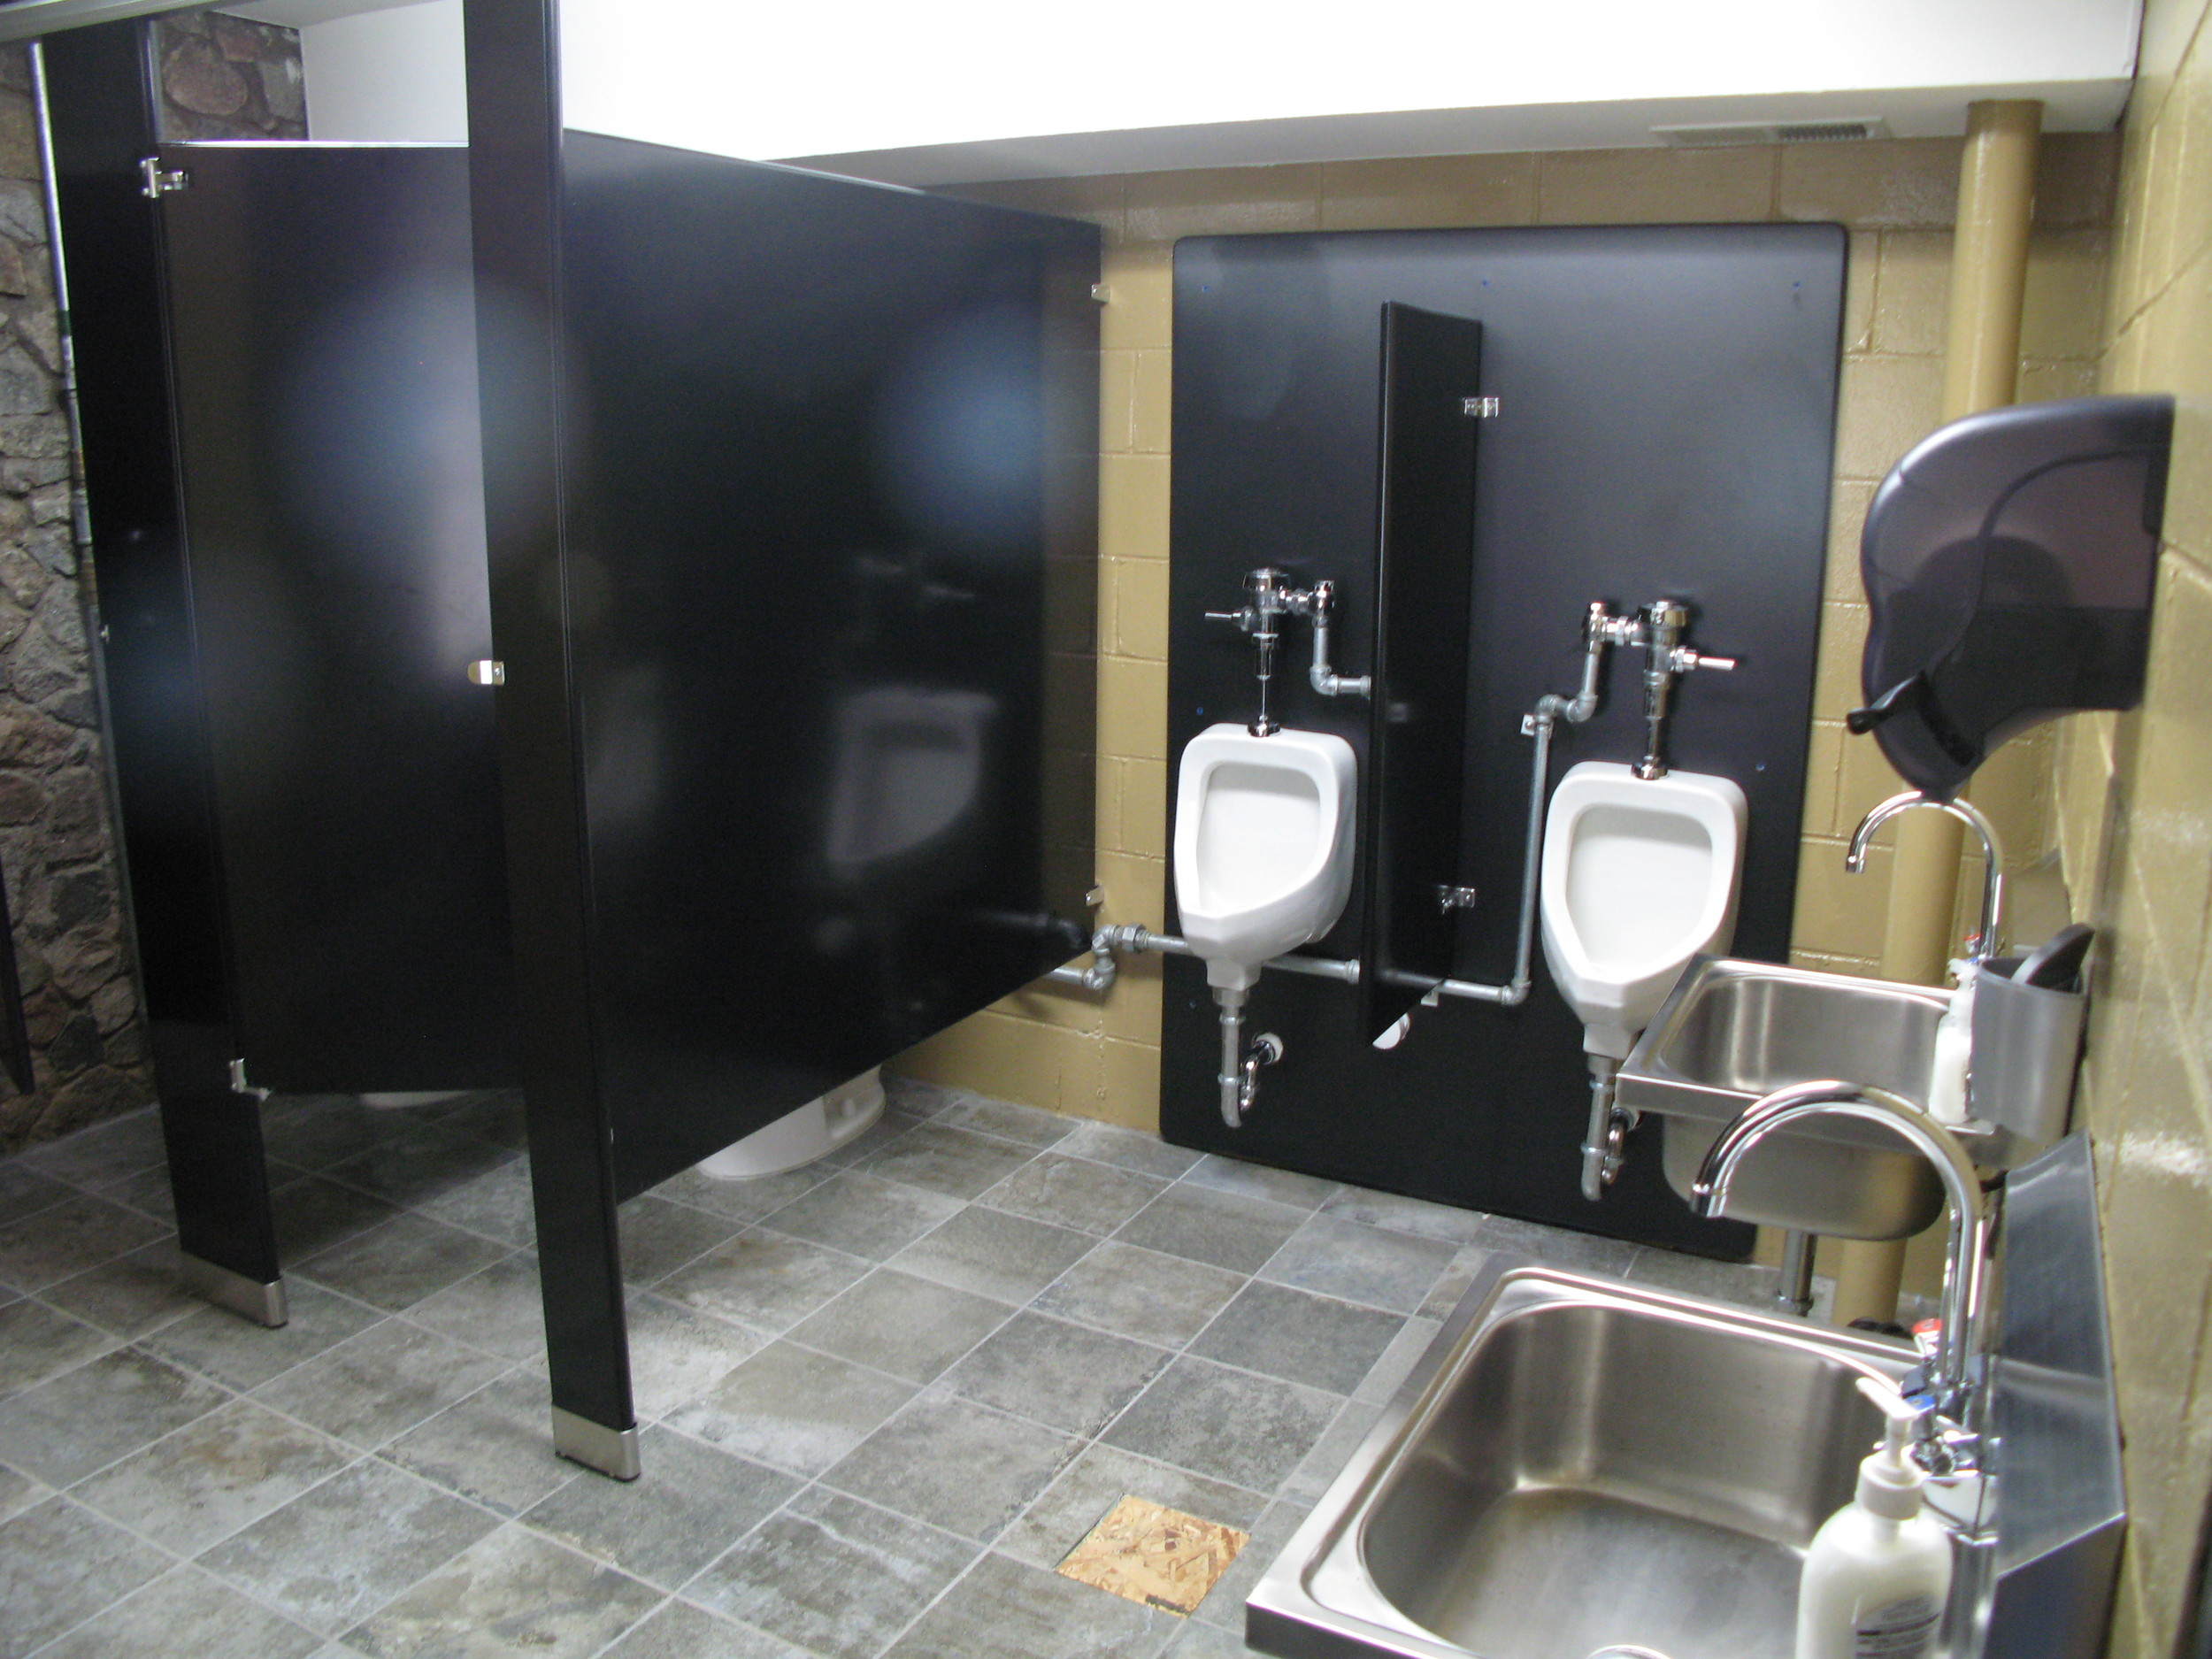 Men's Bathroom - After Final Renovation